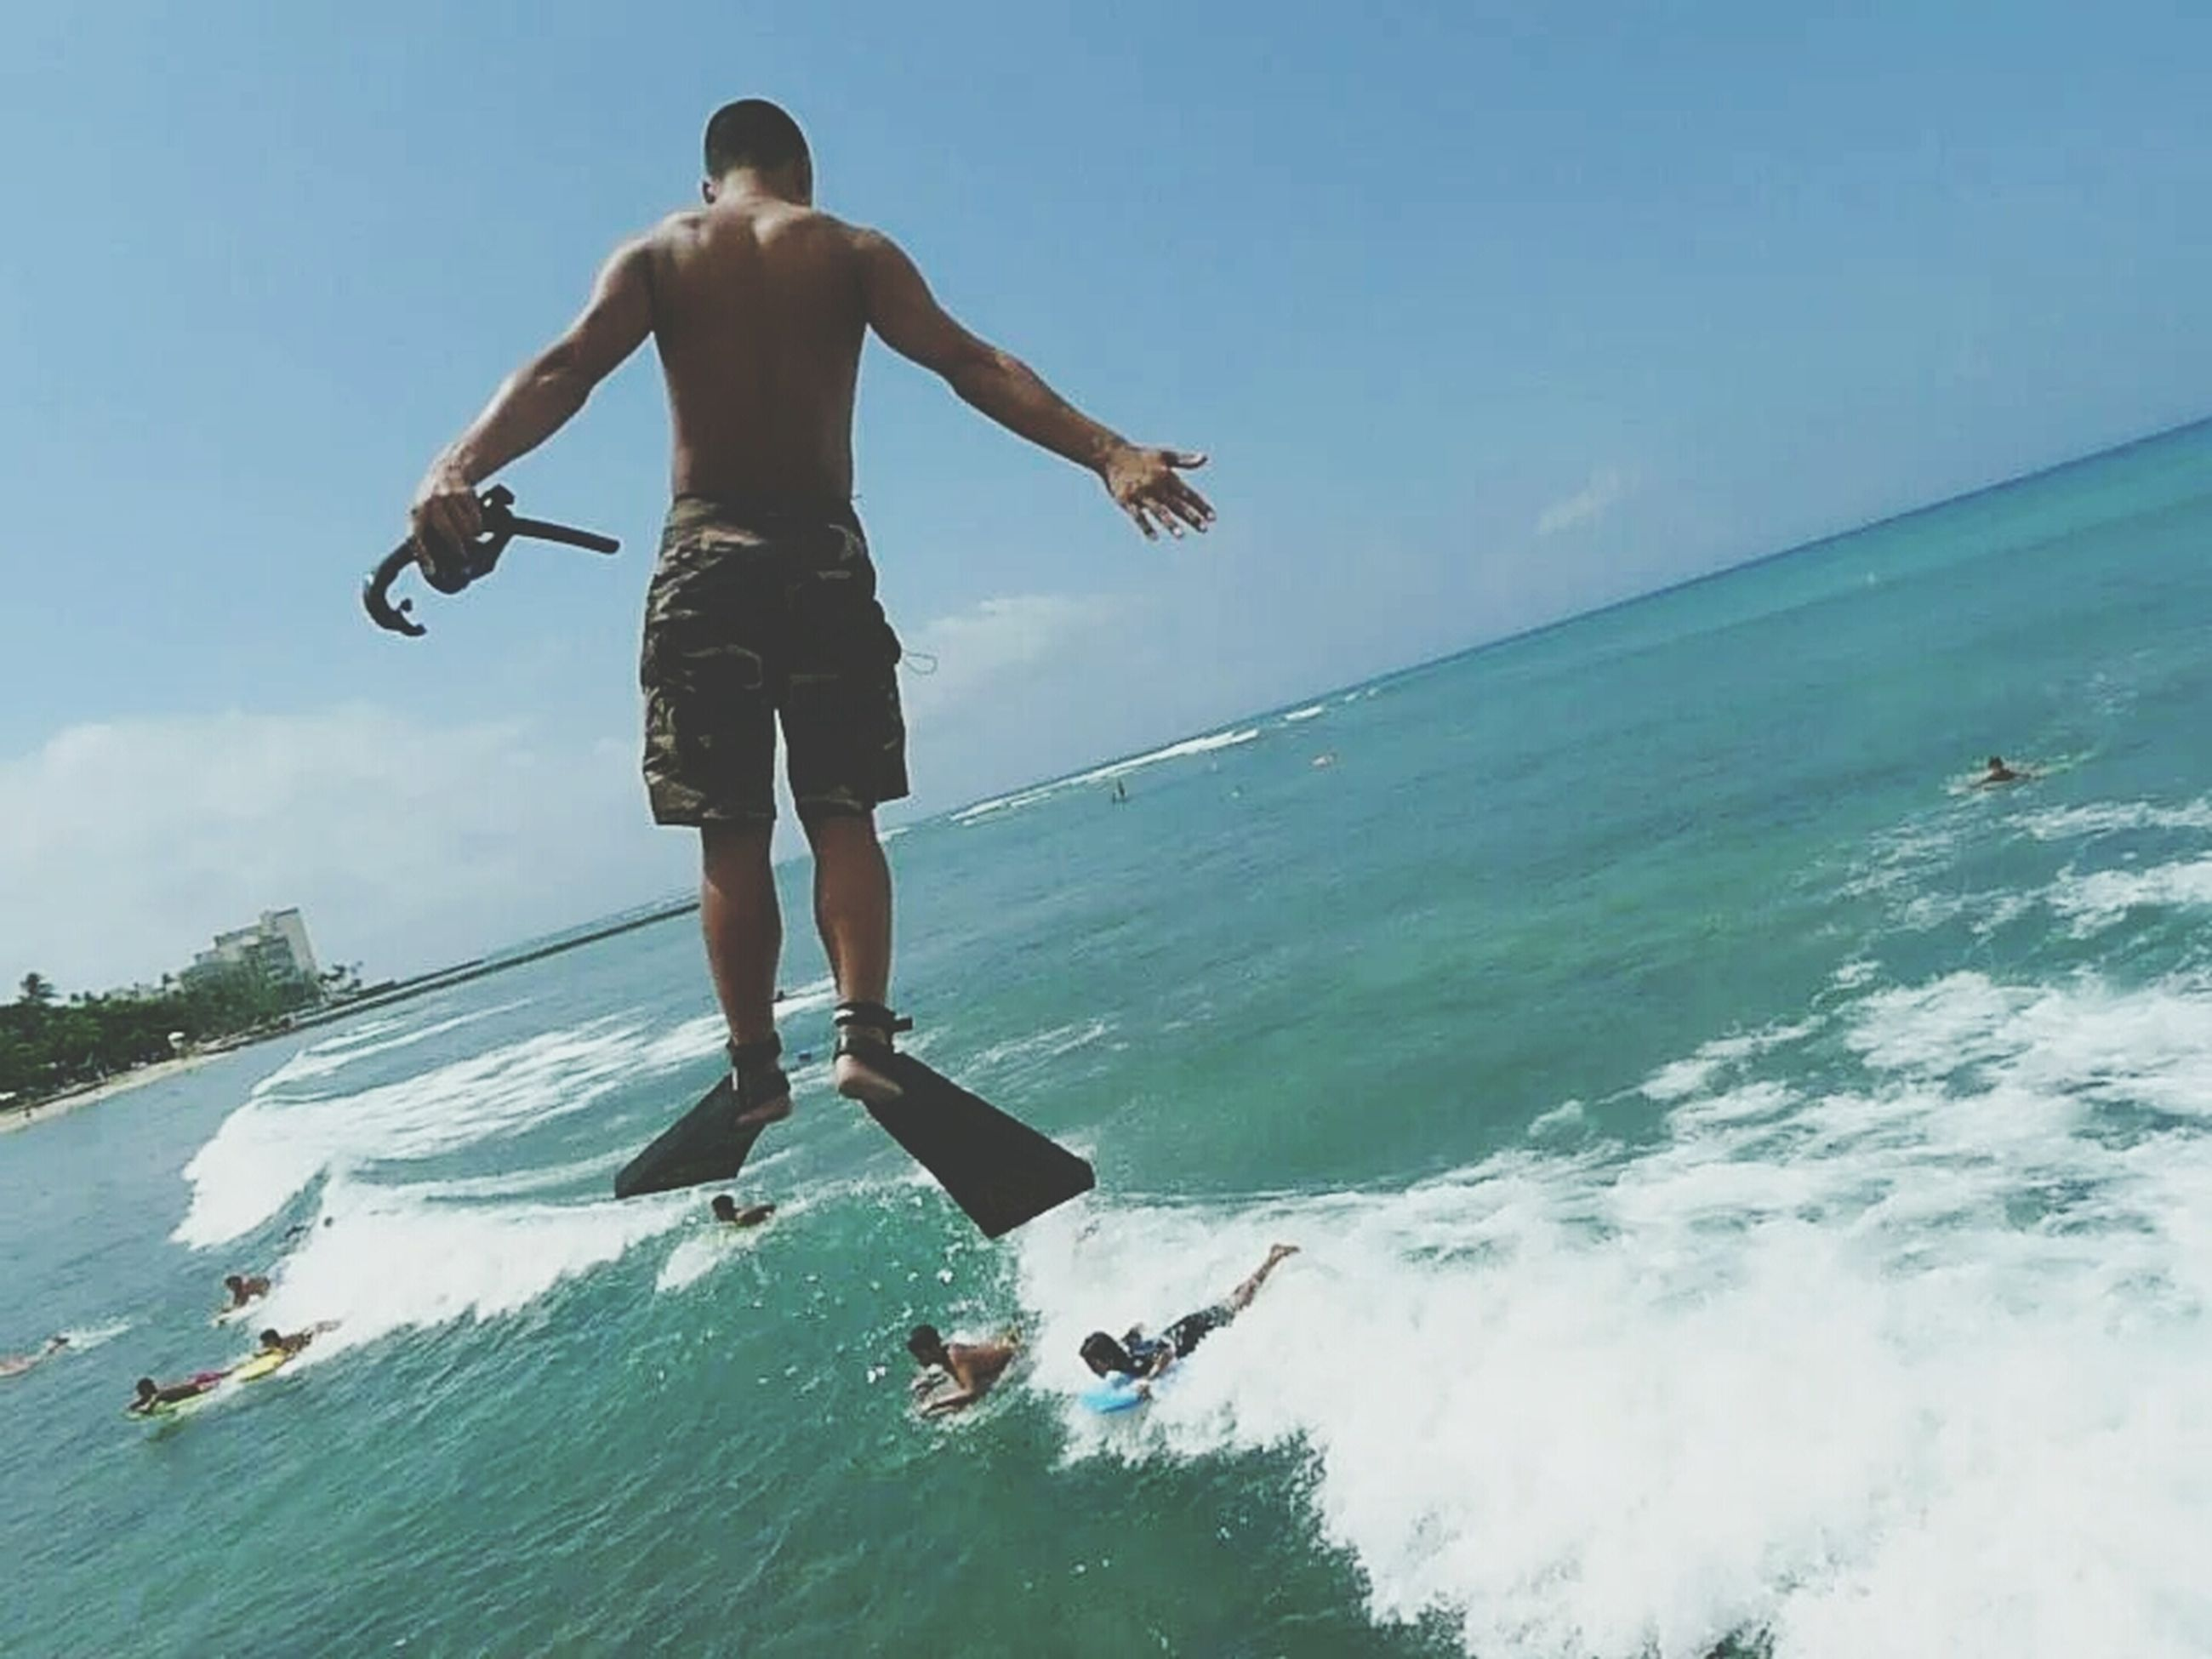 sea, water, lifestyles, leisure activity, full length, enjoyment, horizon over water, mid-air, fun, sky, vacations, jumping, wave, motion, extreme sports, men, beach, sport